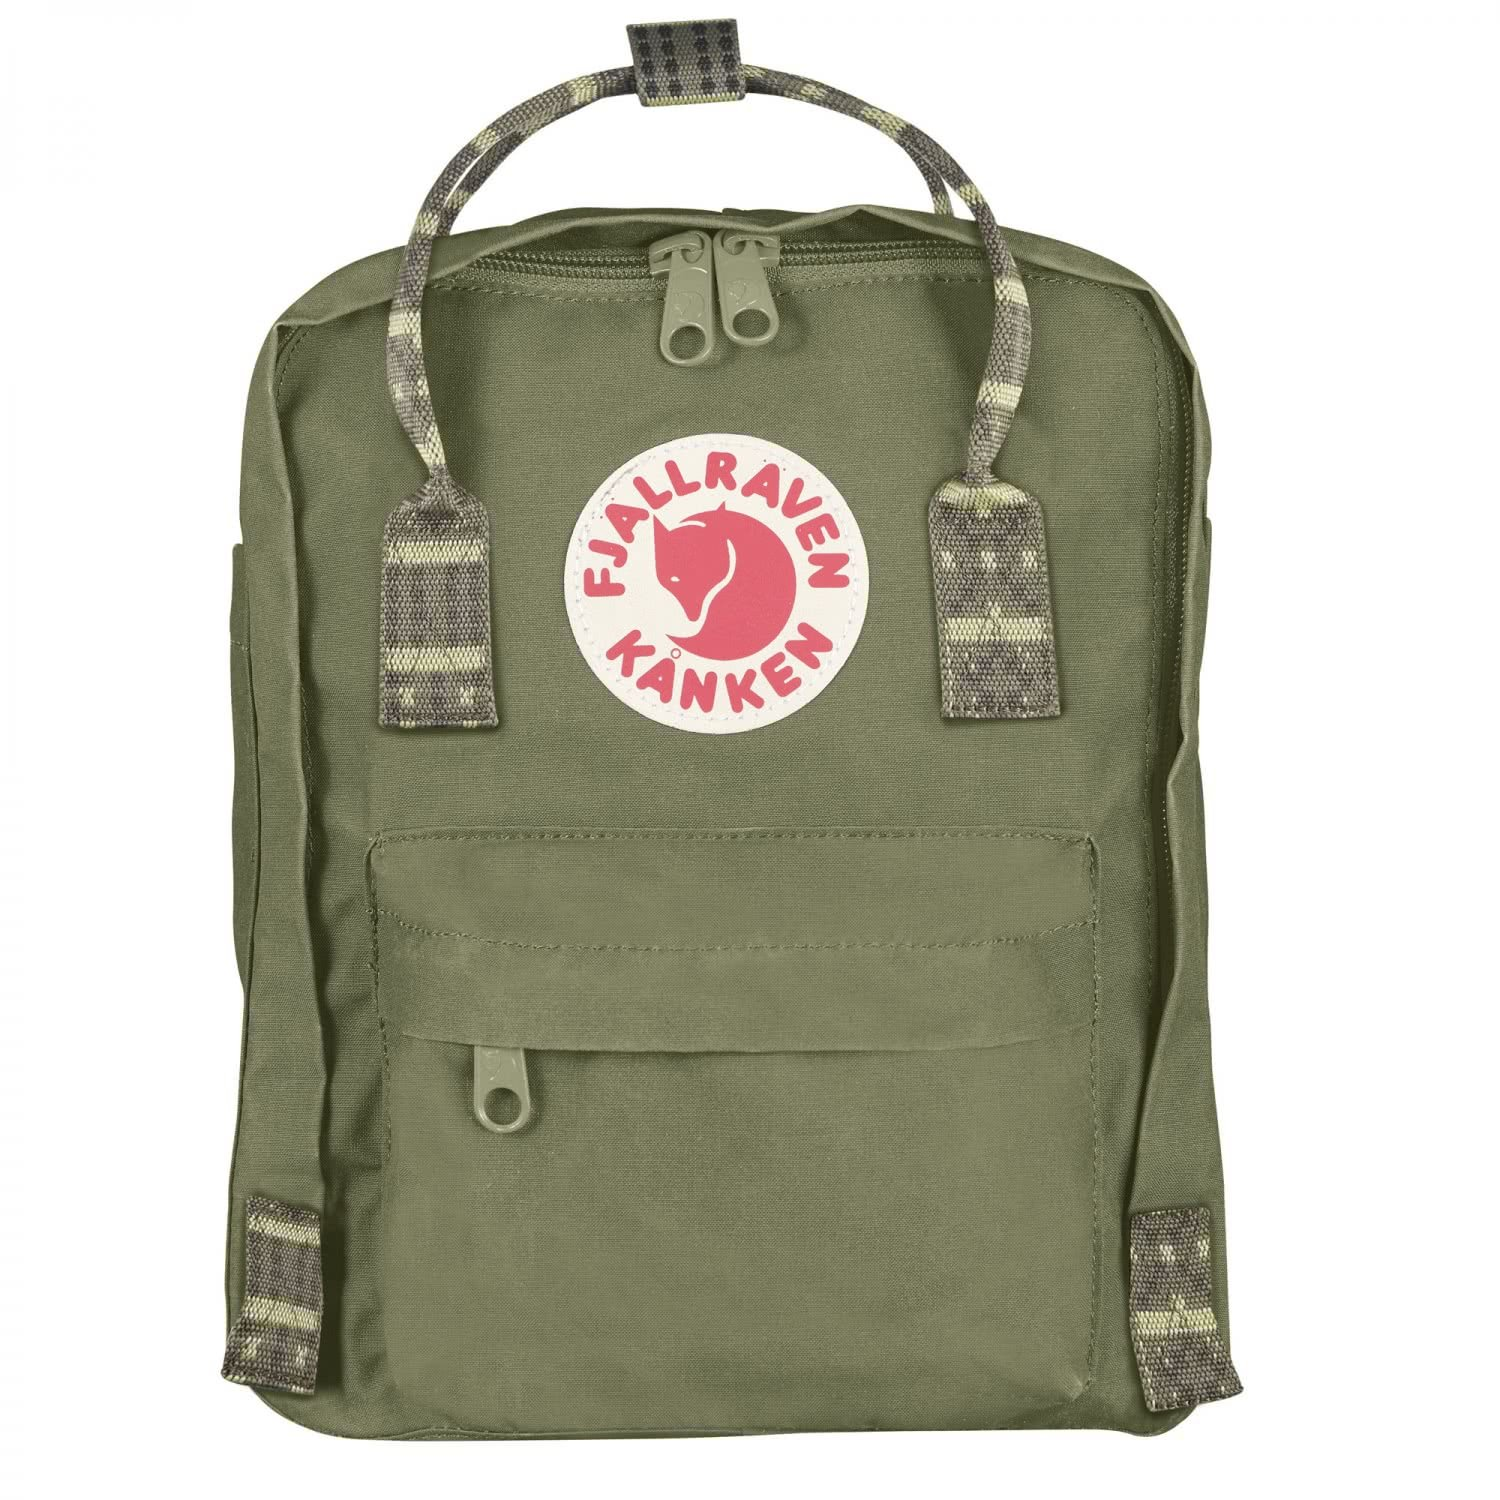 Fjallraven Kanken-Mini Classic Pack, Heritage and Responsibility Since 1960, Green-Folk Pattern by Fjallraven